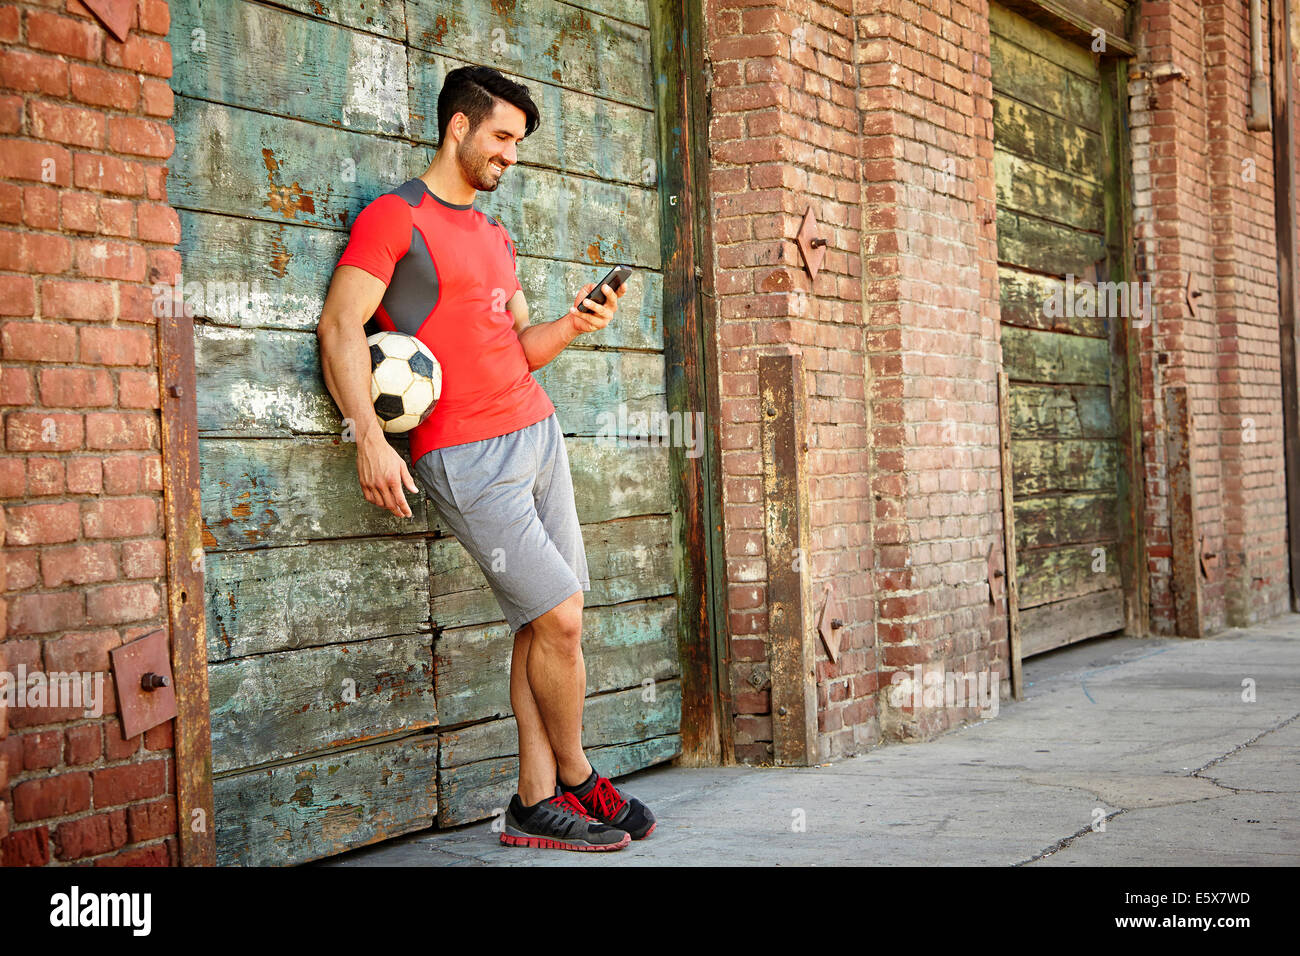 Young male soccer player texting on smartphone - Stock Image